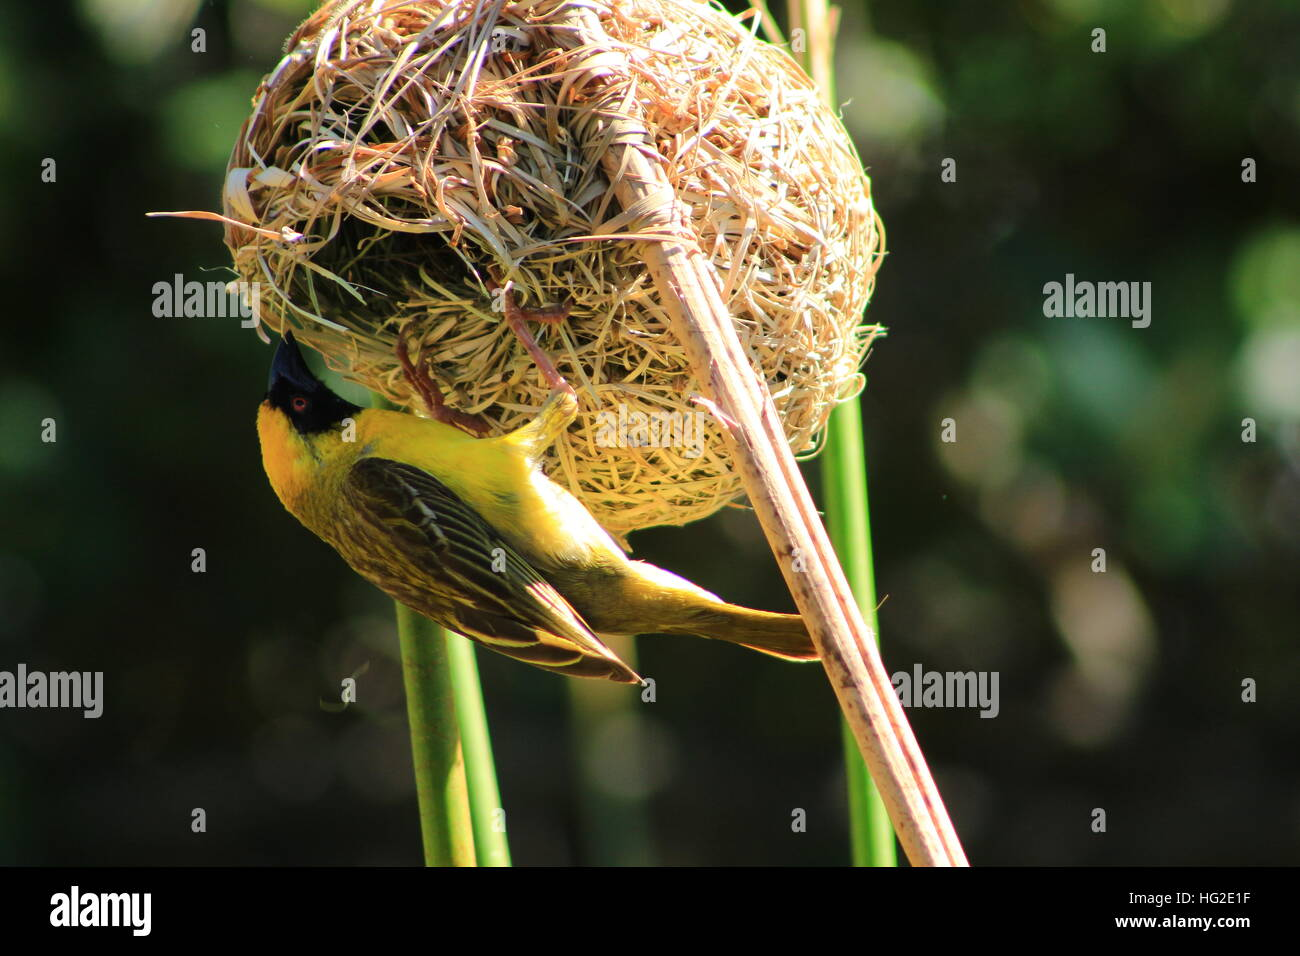 Southern African male Masked Weaver bird taking apart a nest. - Stock Image